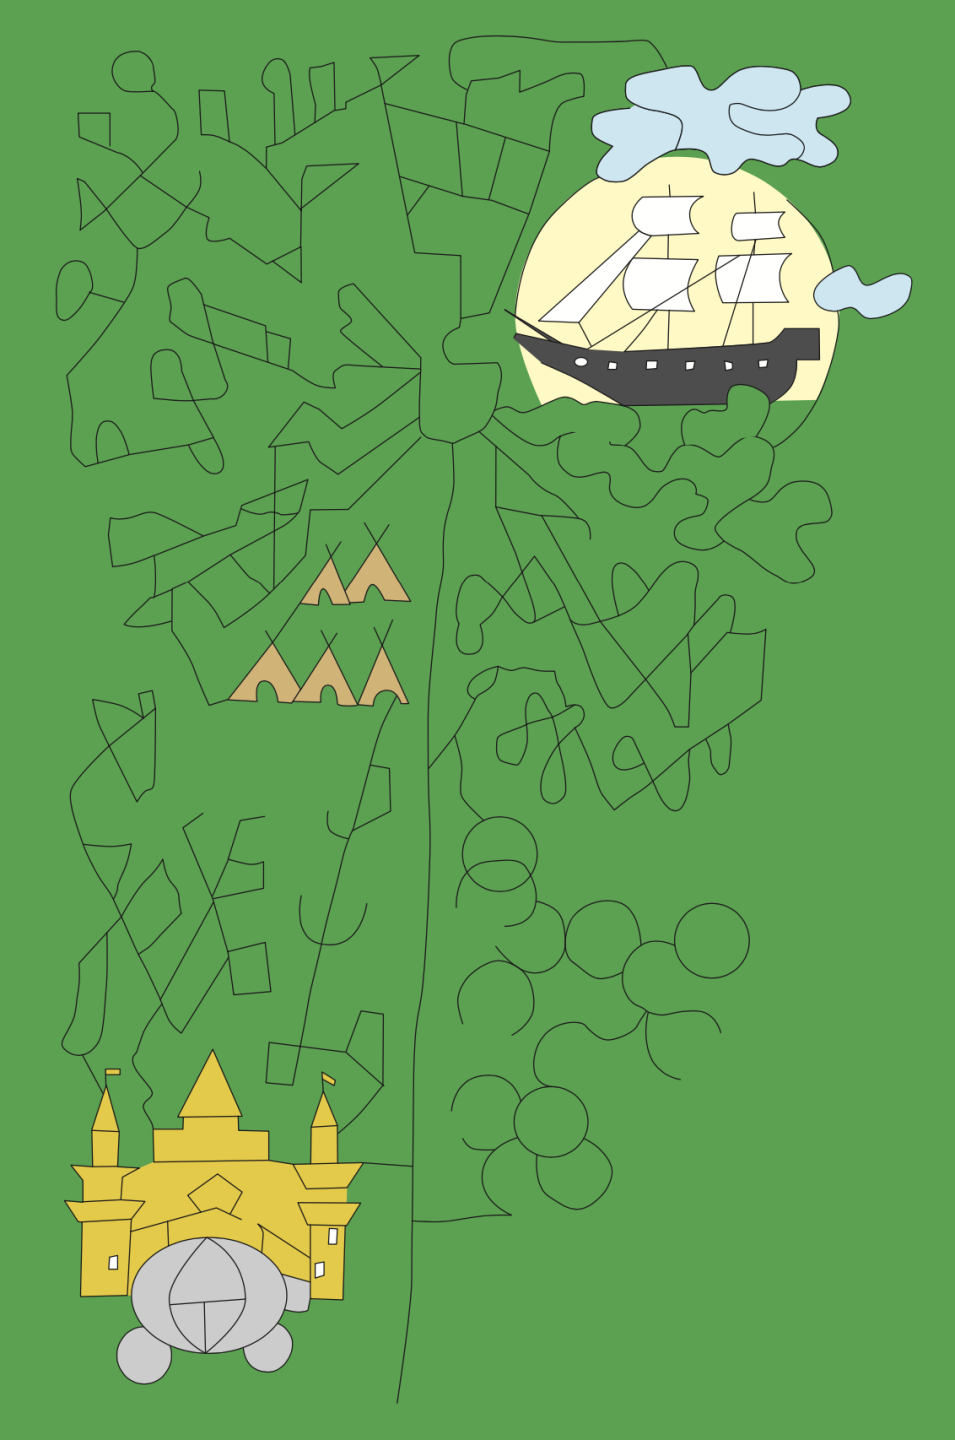 Corn Maze Layout for 2021